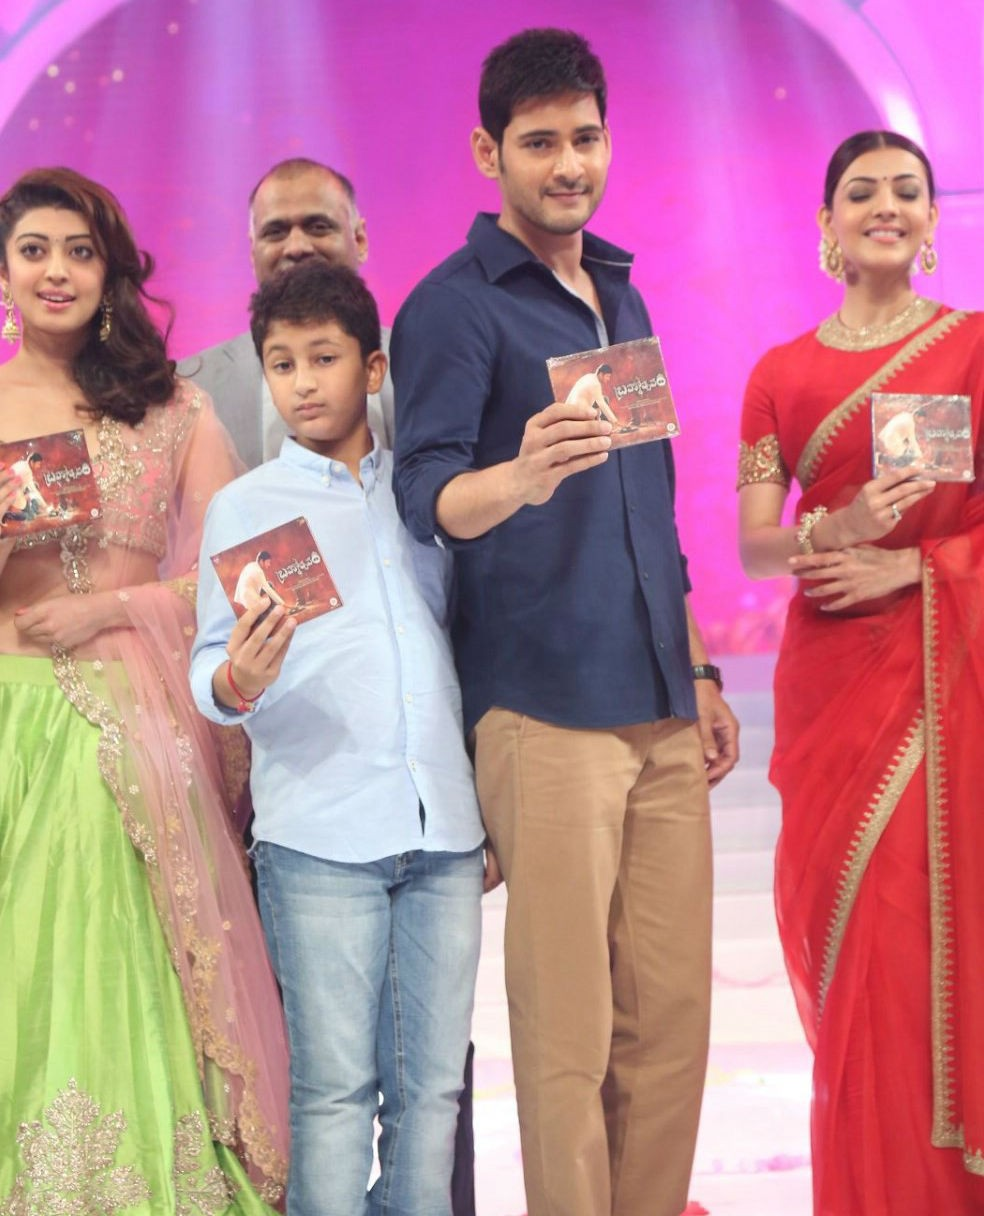 Brahmotsavam,Brahmotsavam audio launch,Mahesh Babu,Samantha,Brahmotsavam audio launch pics,Brahmotsavam audio launch images,Brahmotsavam audio launch stills,Brahmotsavam audio launch pictures,Brahmotsavam audio launch photos,Telugu movie Brahmotsavam